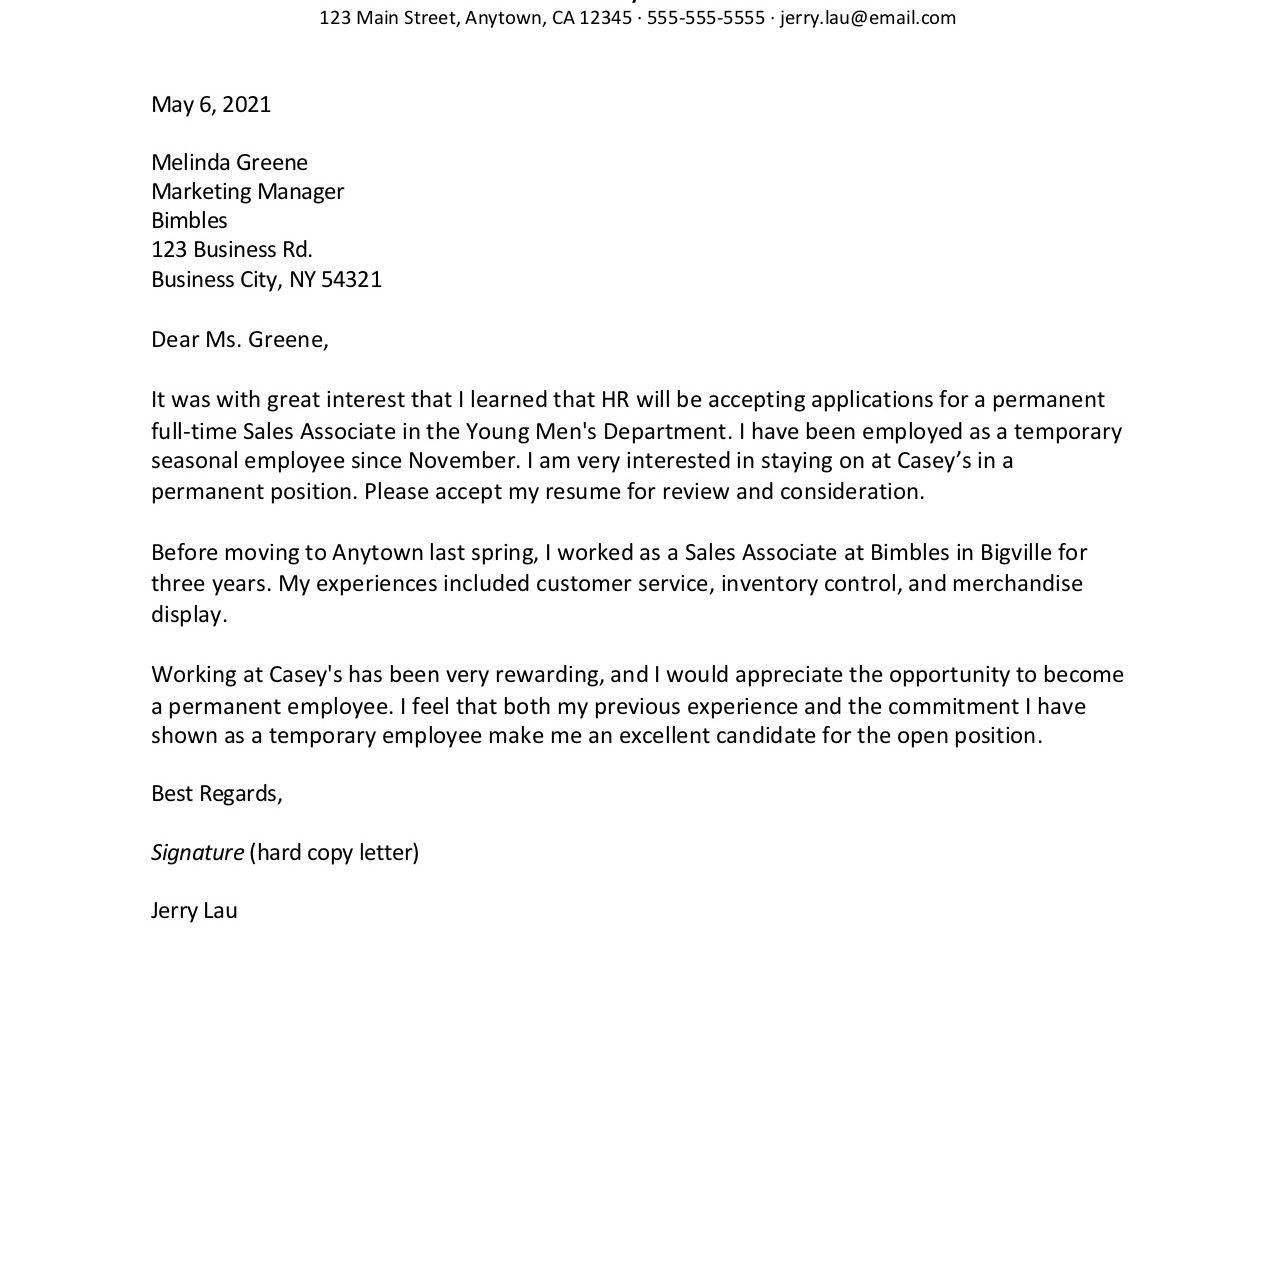 Screenshot of a permanent position request letter